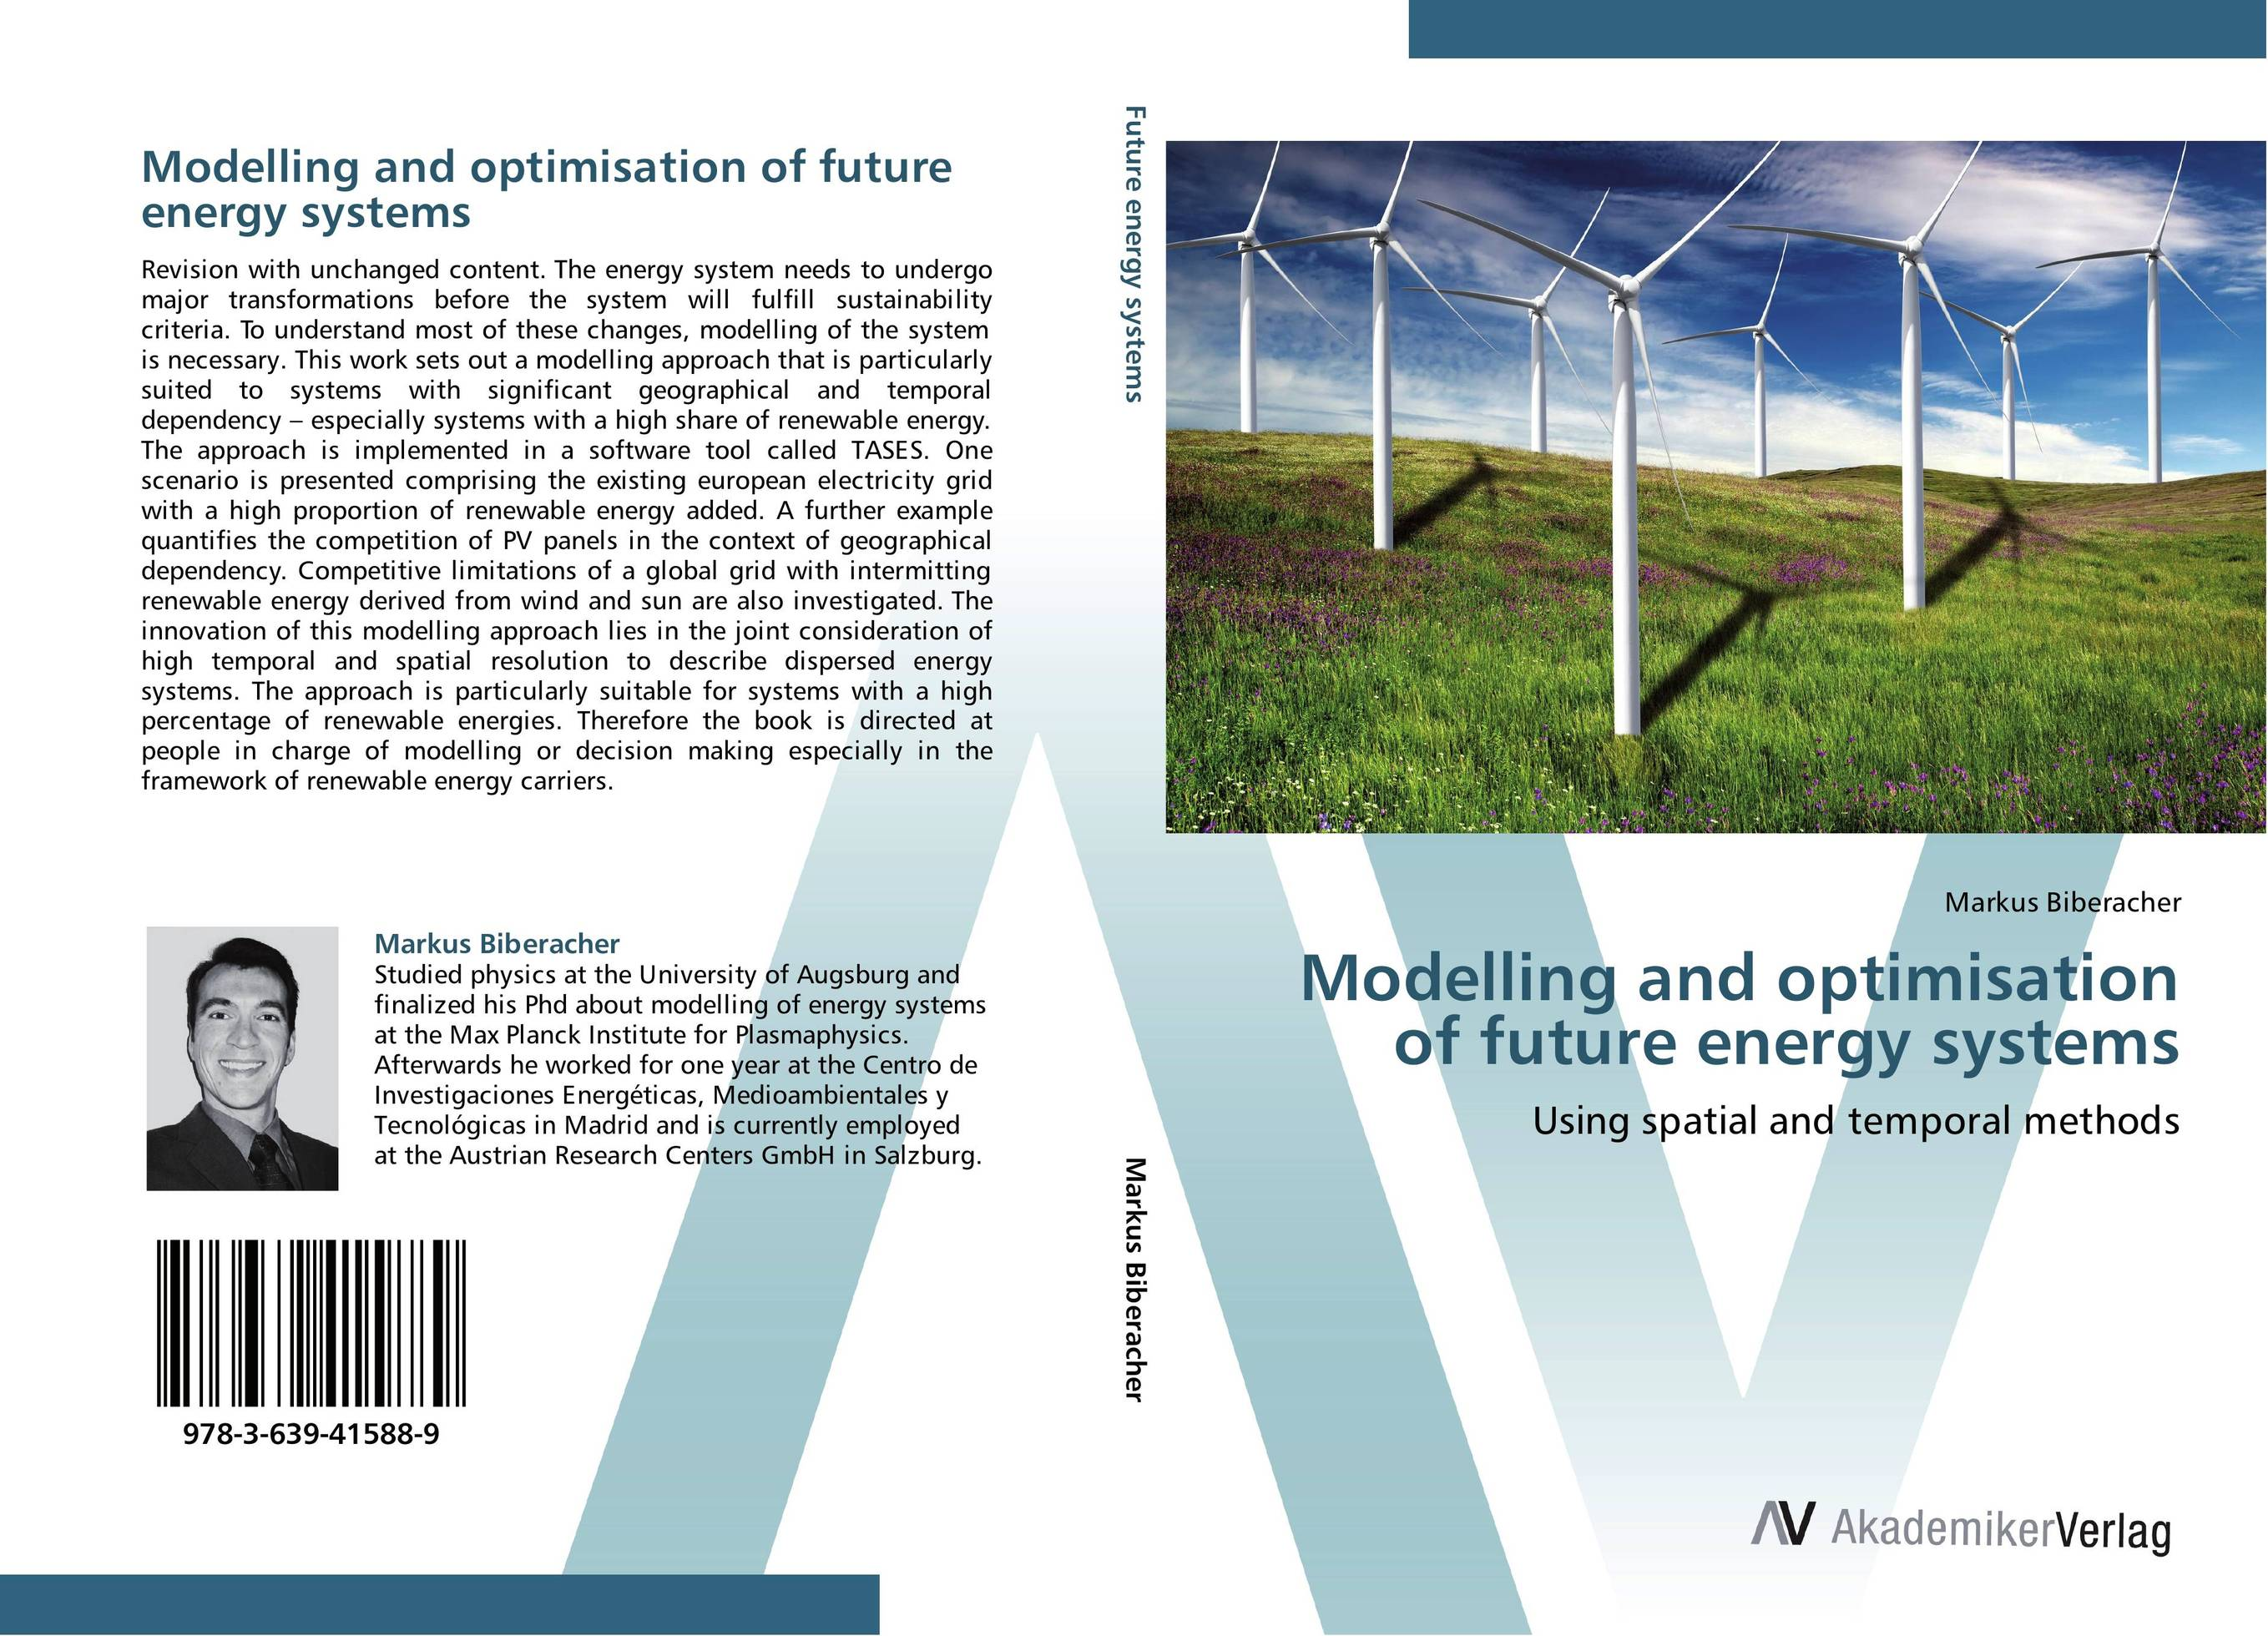 Modelling and optimisation of future energy systems manufacturing systems modelling